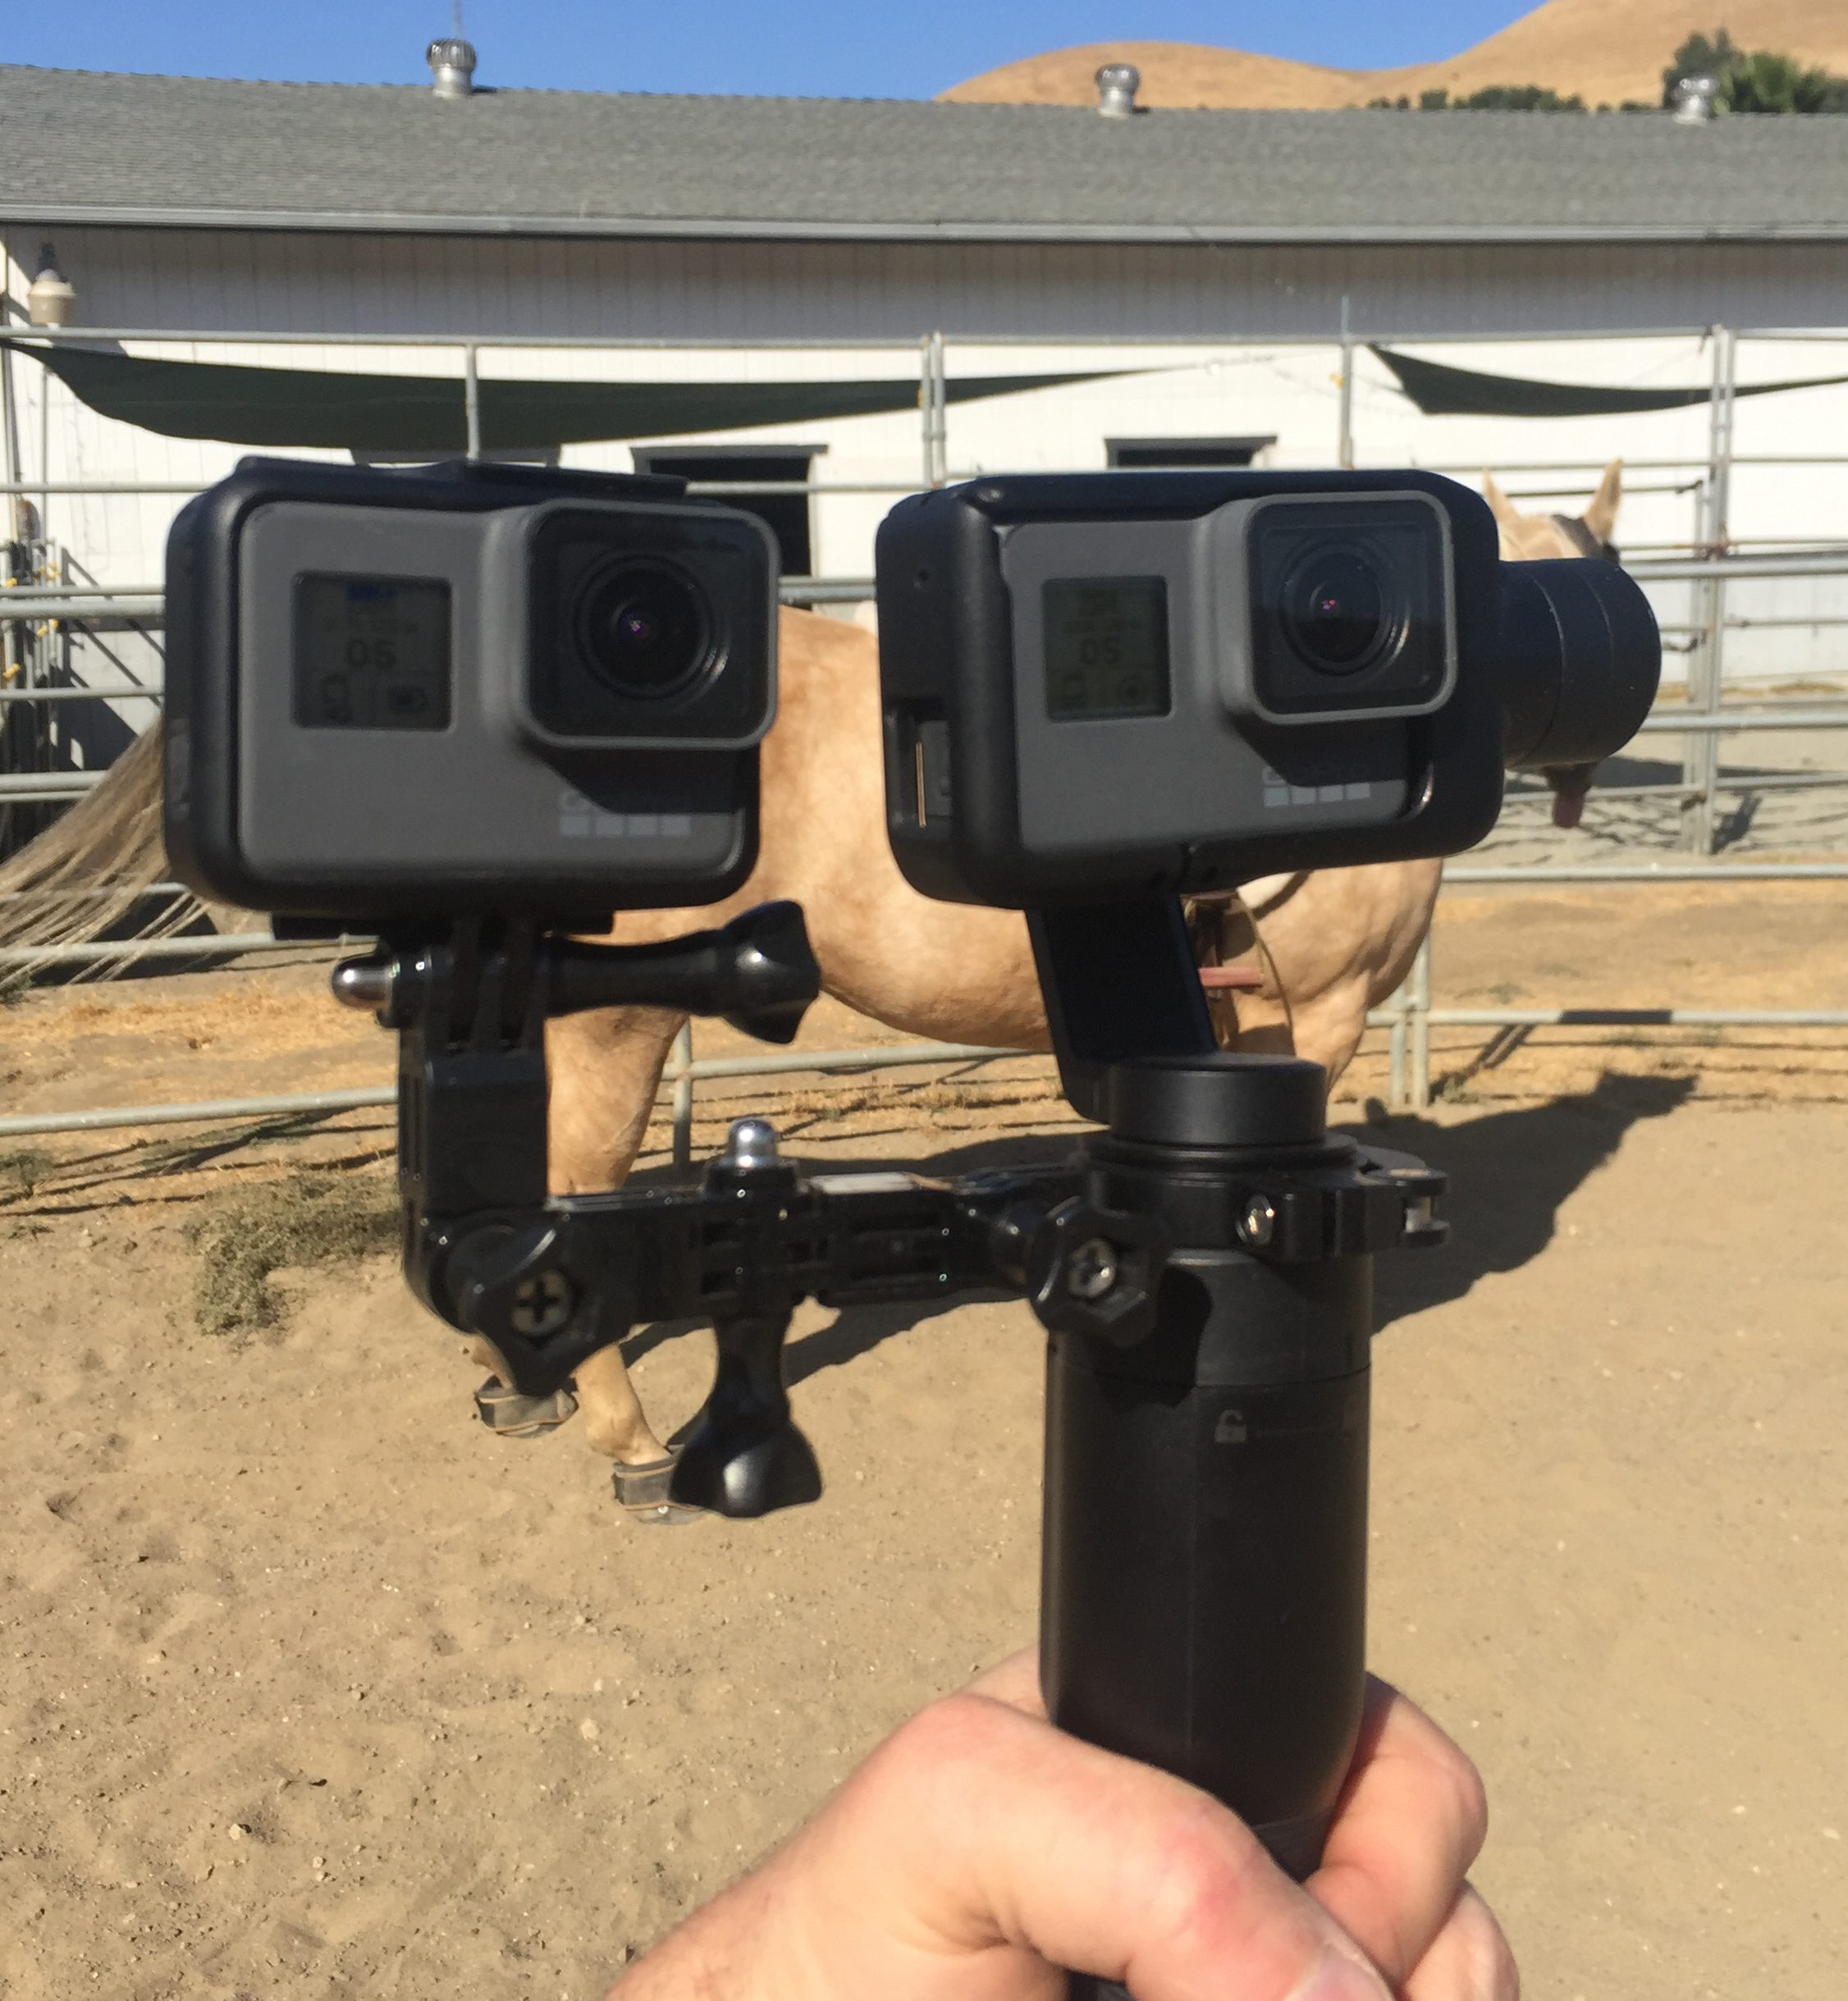 Hands-on Review: GoPro HERO6 Black by Jeff Foster - ProVideo Coalition